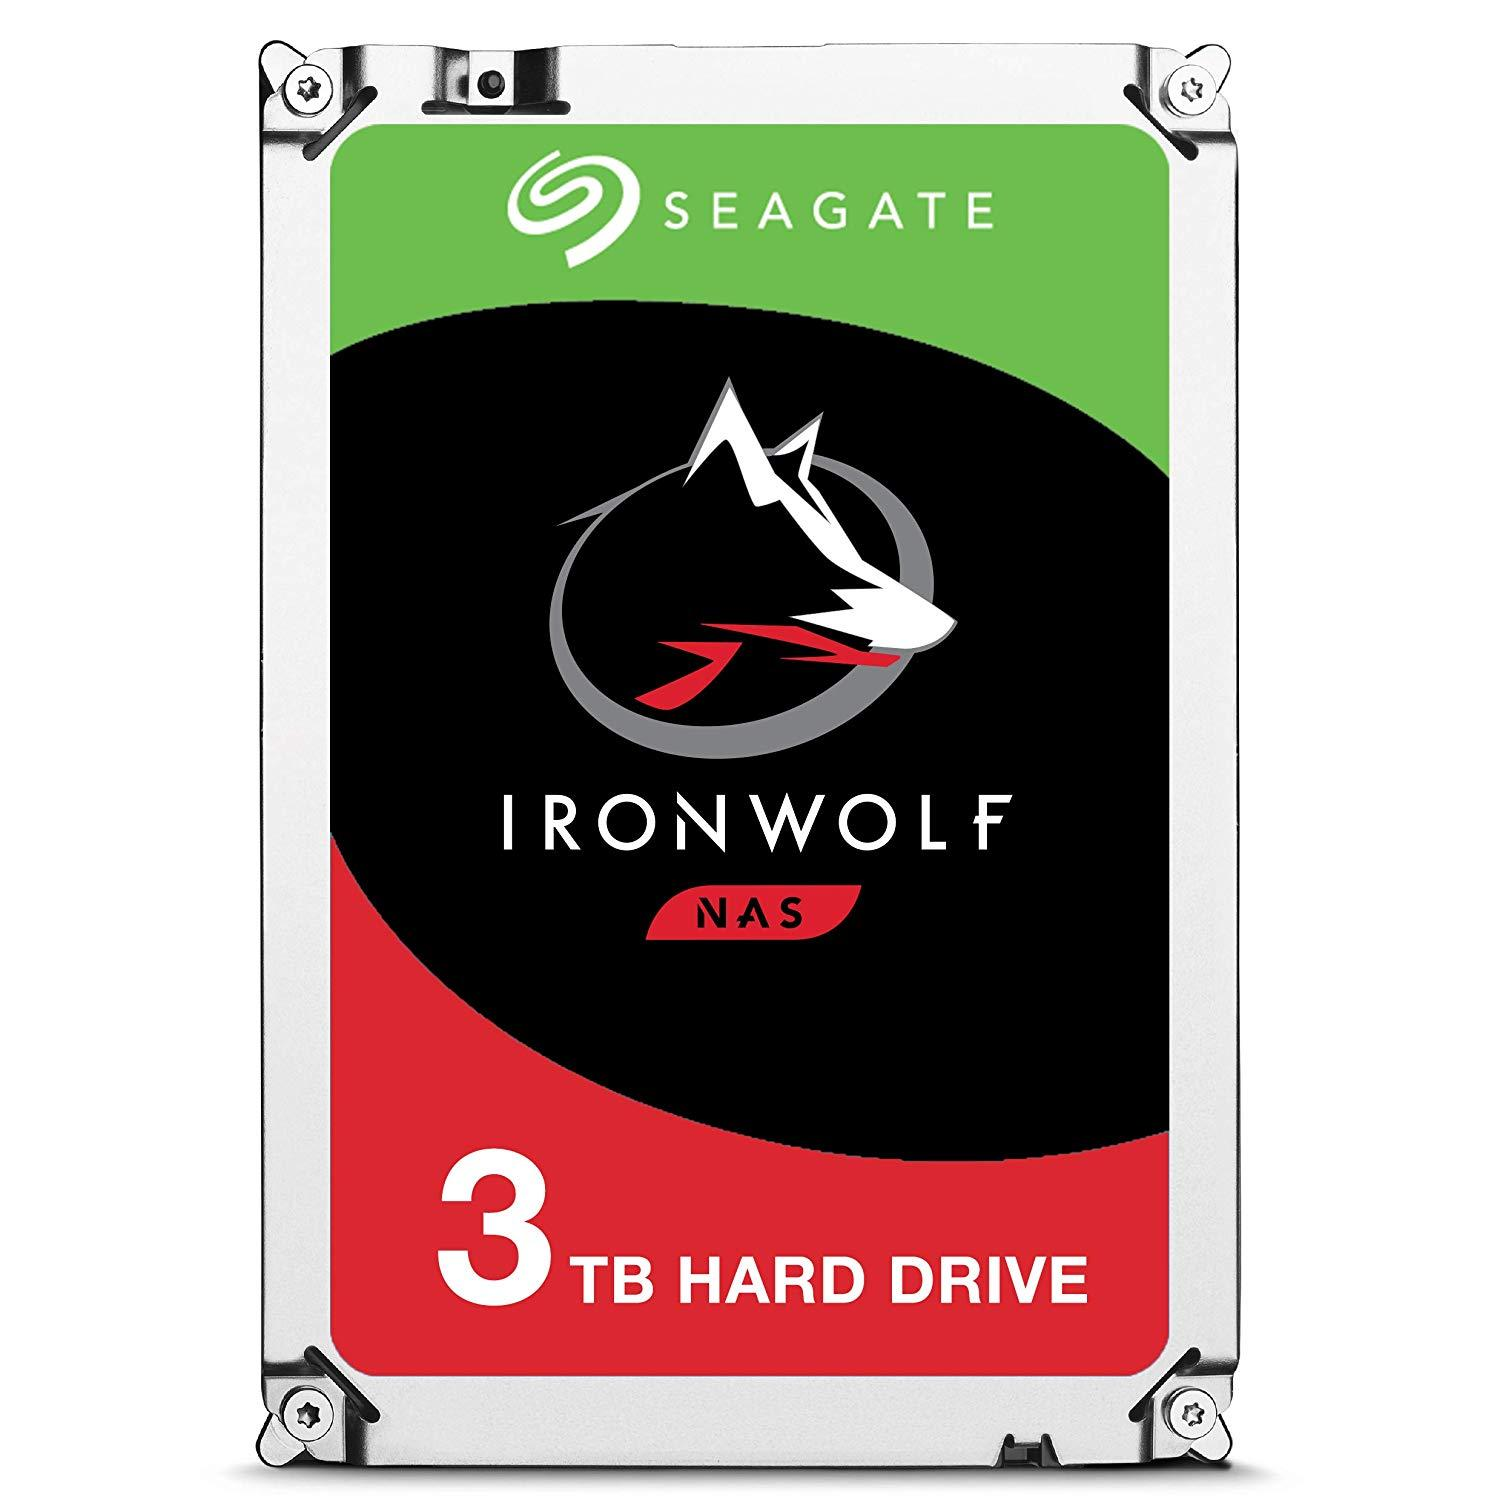 Хард диск SEAGATE IronWolf NAS 3TB 64MB 5900 rpm SATA 6.0Gb/s